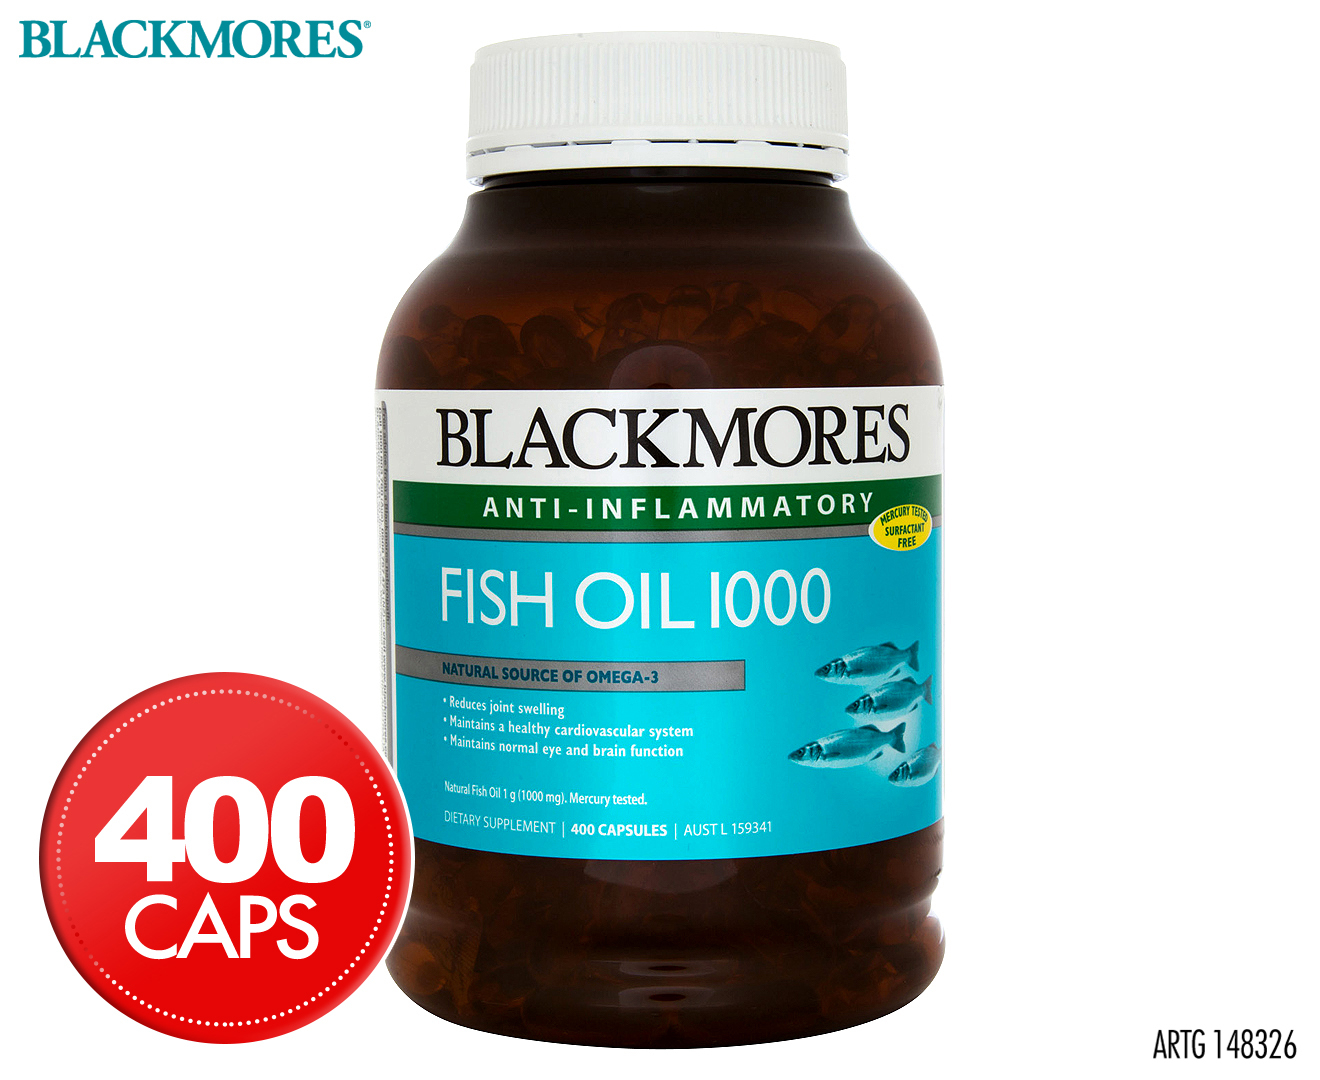 Blackmores Anti Inflammatory Fish Oil 1000 400 Caps